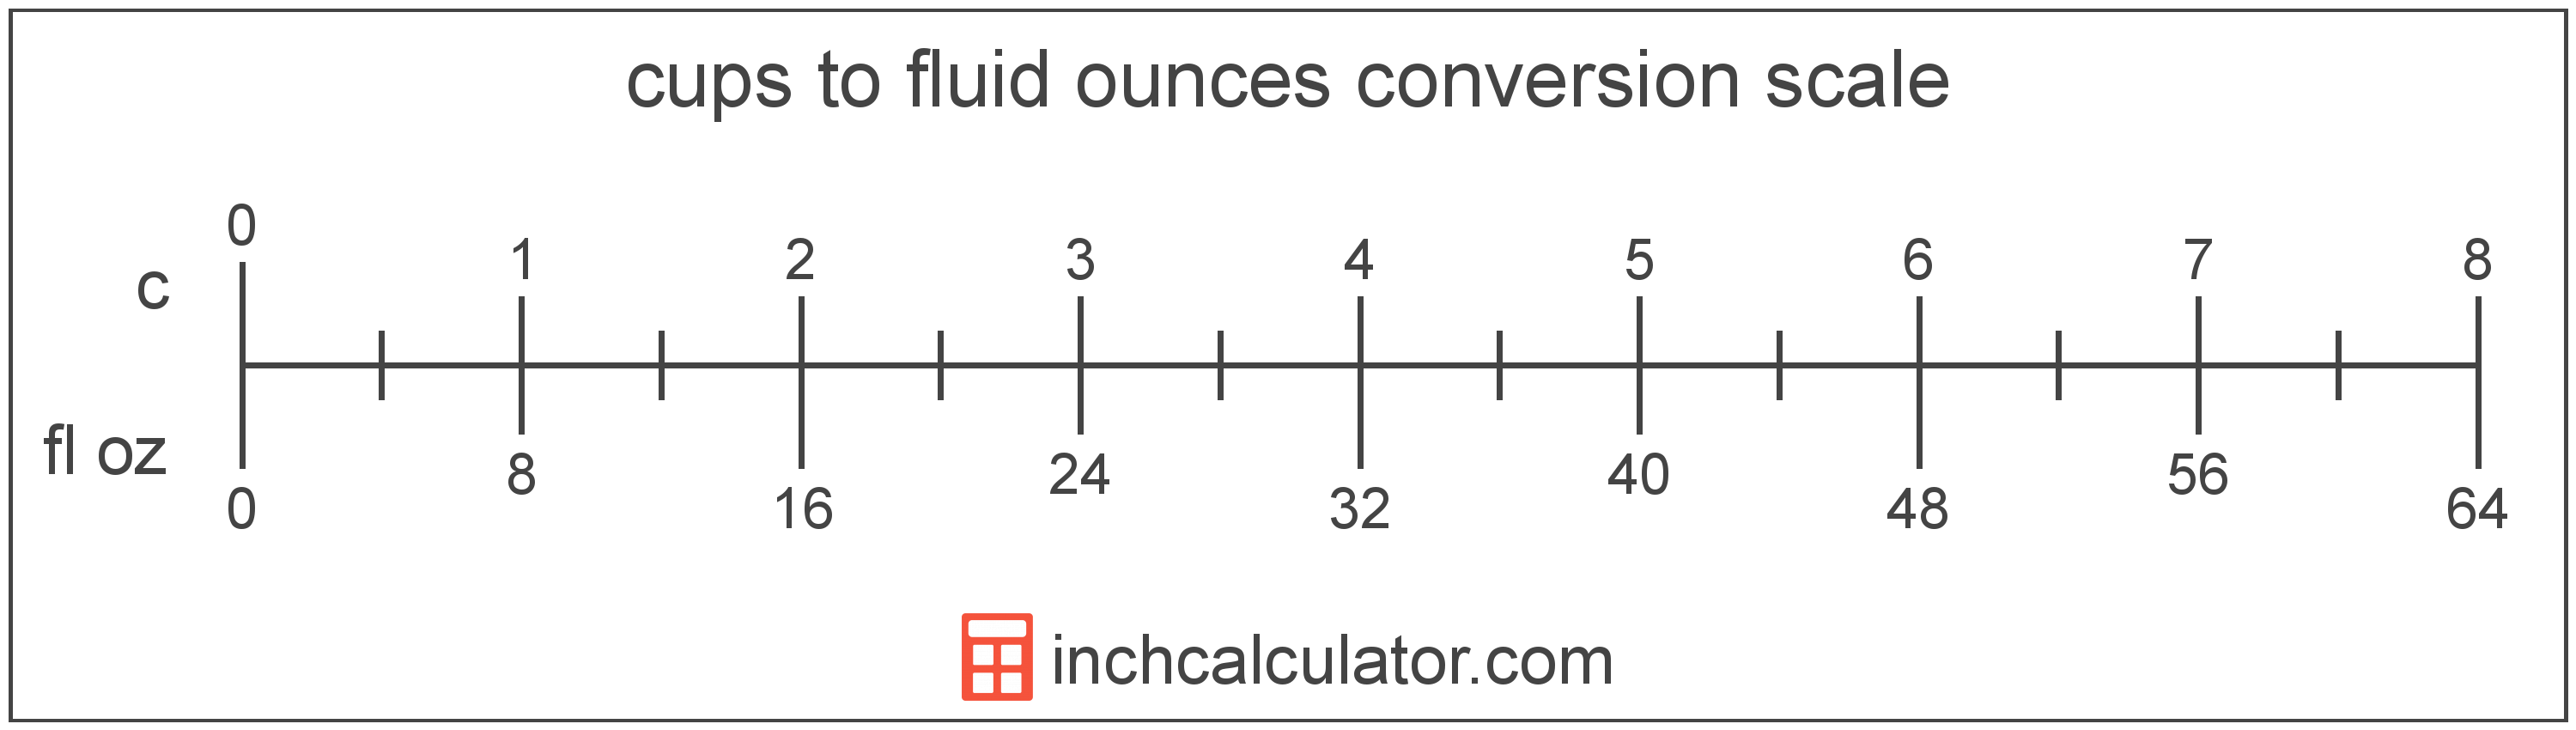 conversion scale showing fluid ounces and equivalent cups volume values